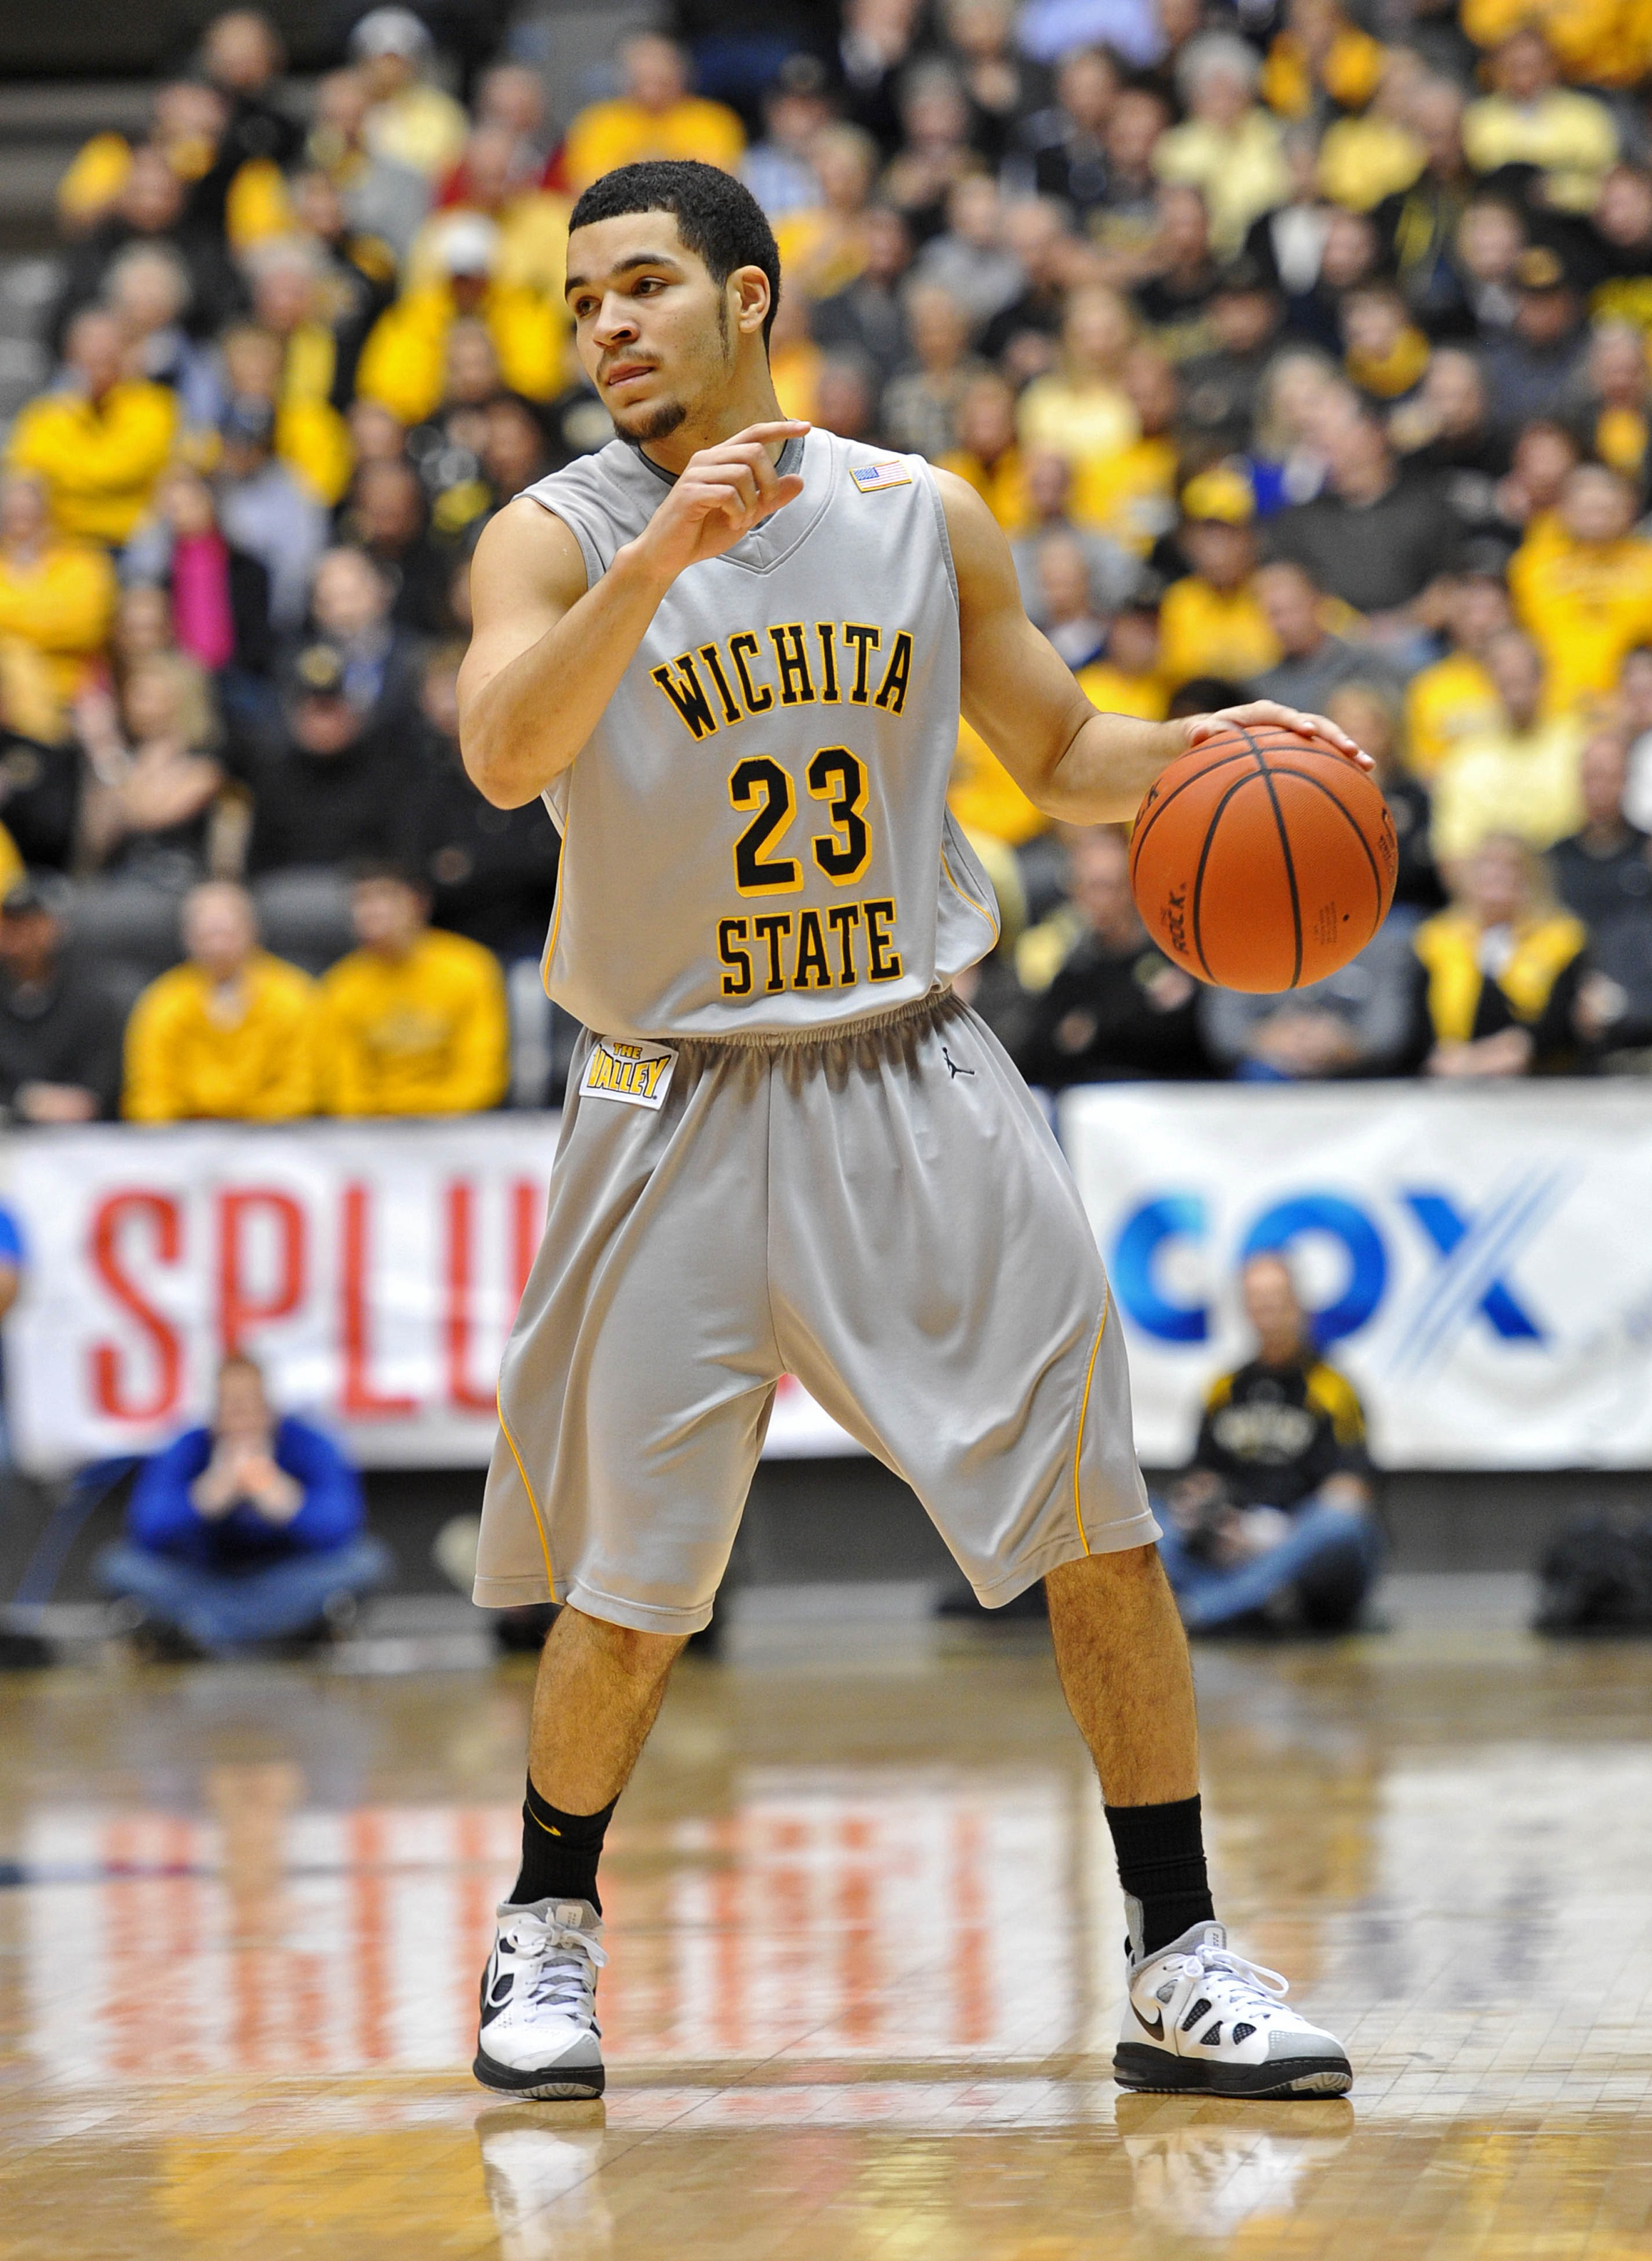 Fred VanVleet breaking out as part of undefeated Wichita State team